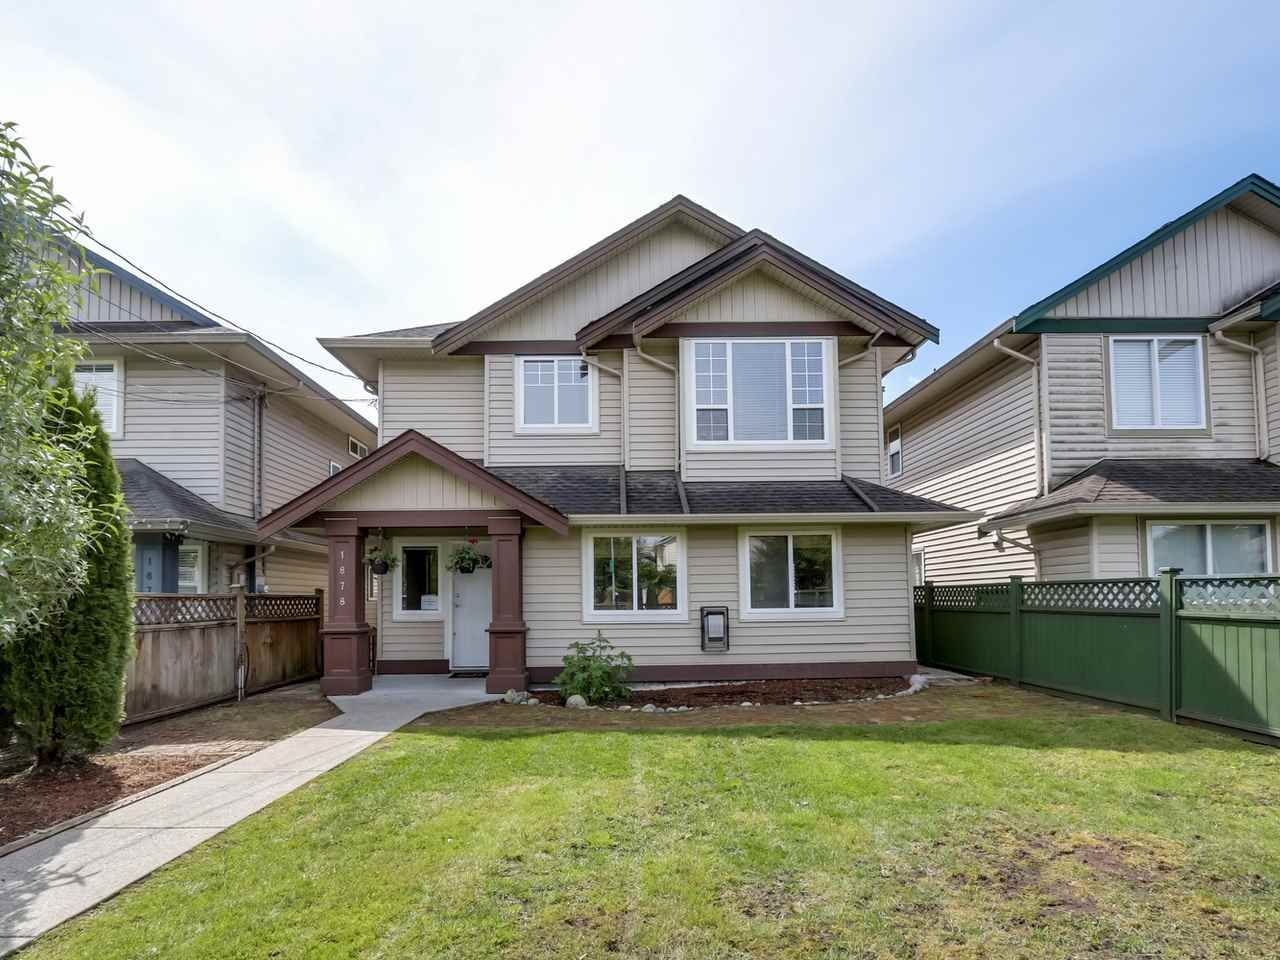 Main Photo: 1878 LANGAN Avenue in Port Coquitlam: Lower Mary Hill House for sale : MLS®# R2061753